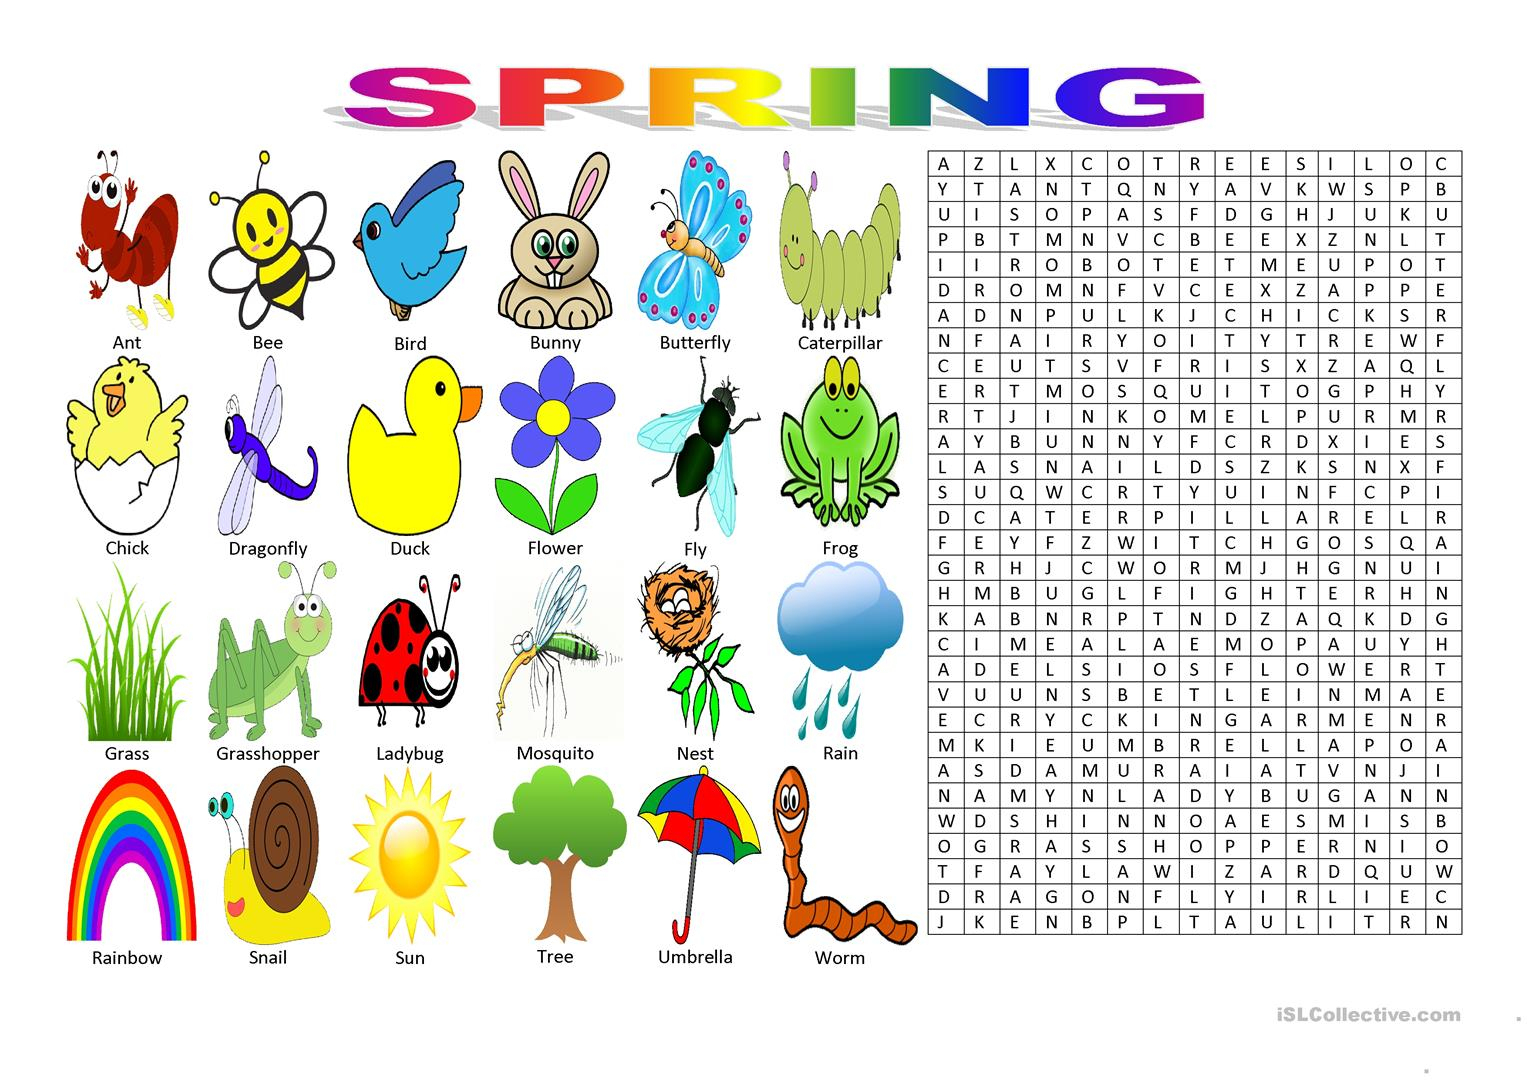 Spring Vocabulary (Wordsearch Puzzle) Worksheet - Free Esl Printable - Printable Vocabulary Puzzles